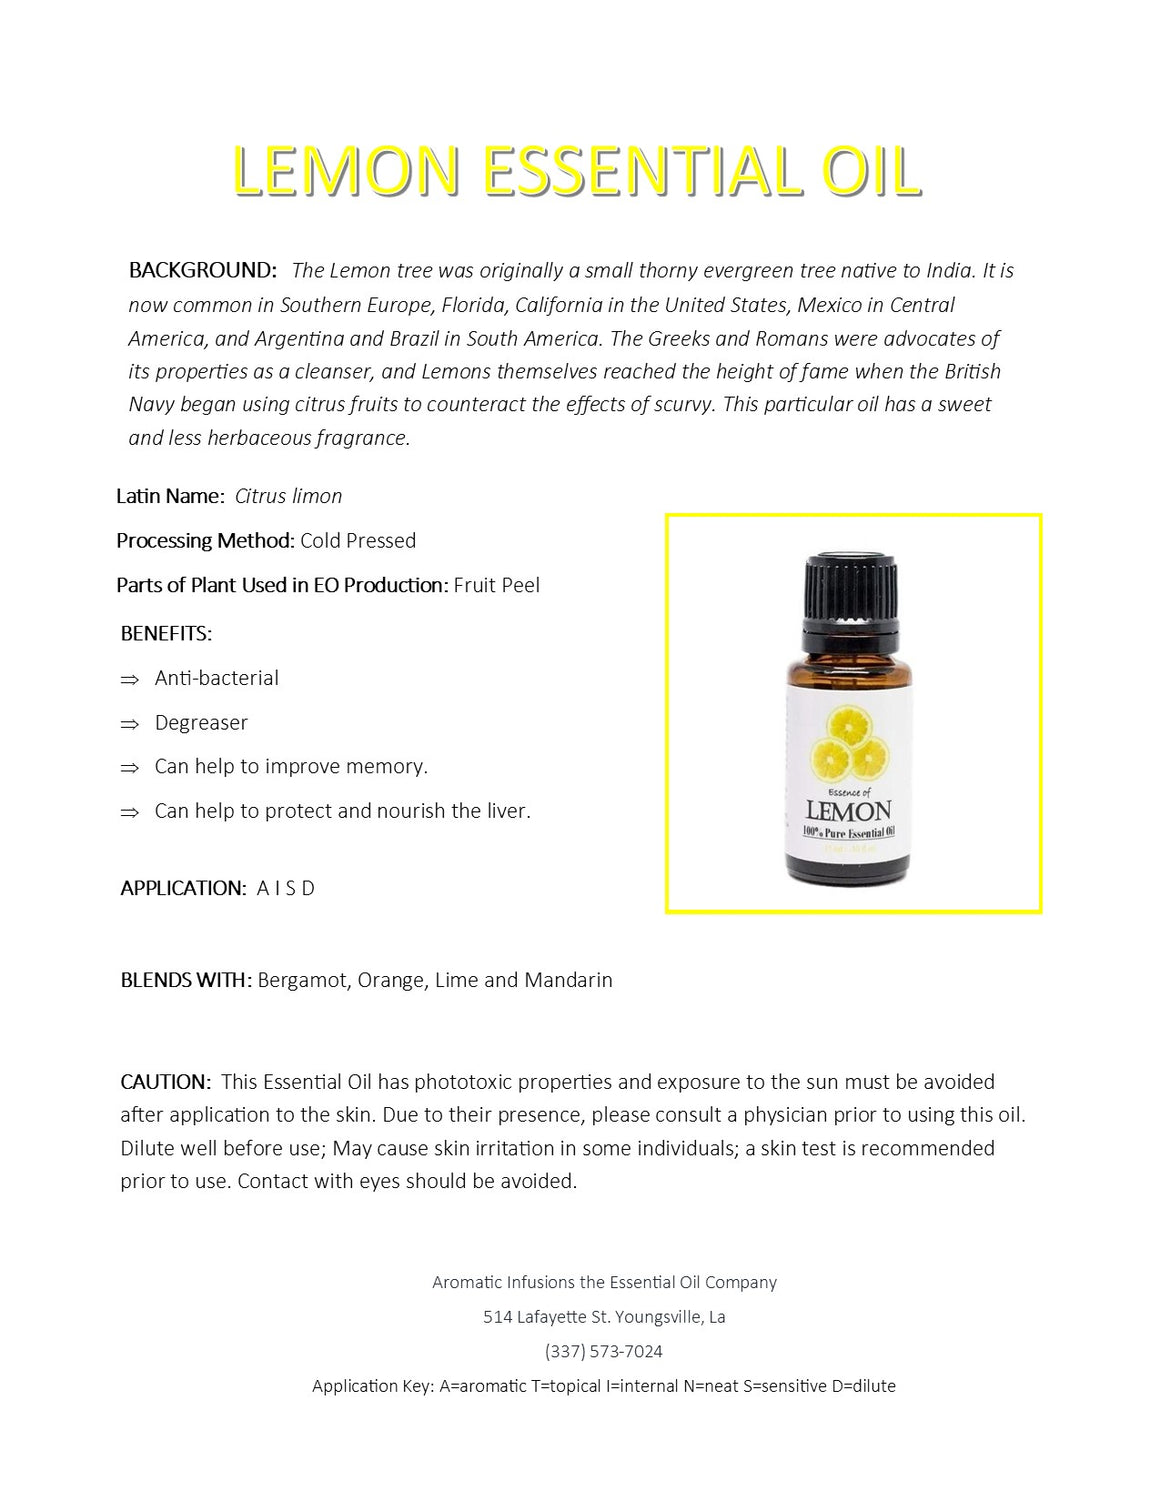 Lemon Essential Oil 15ml - Aromatic Infusions